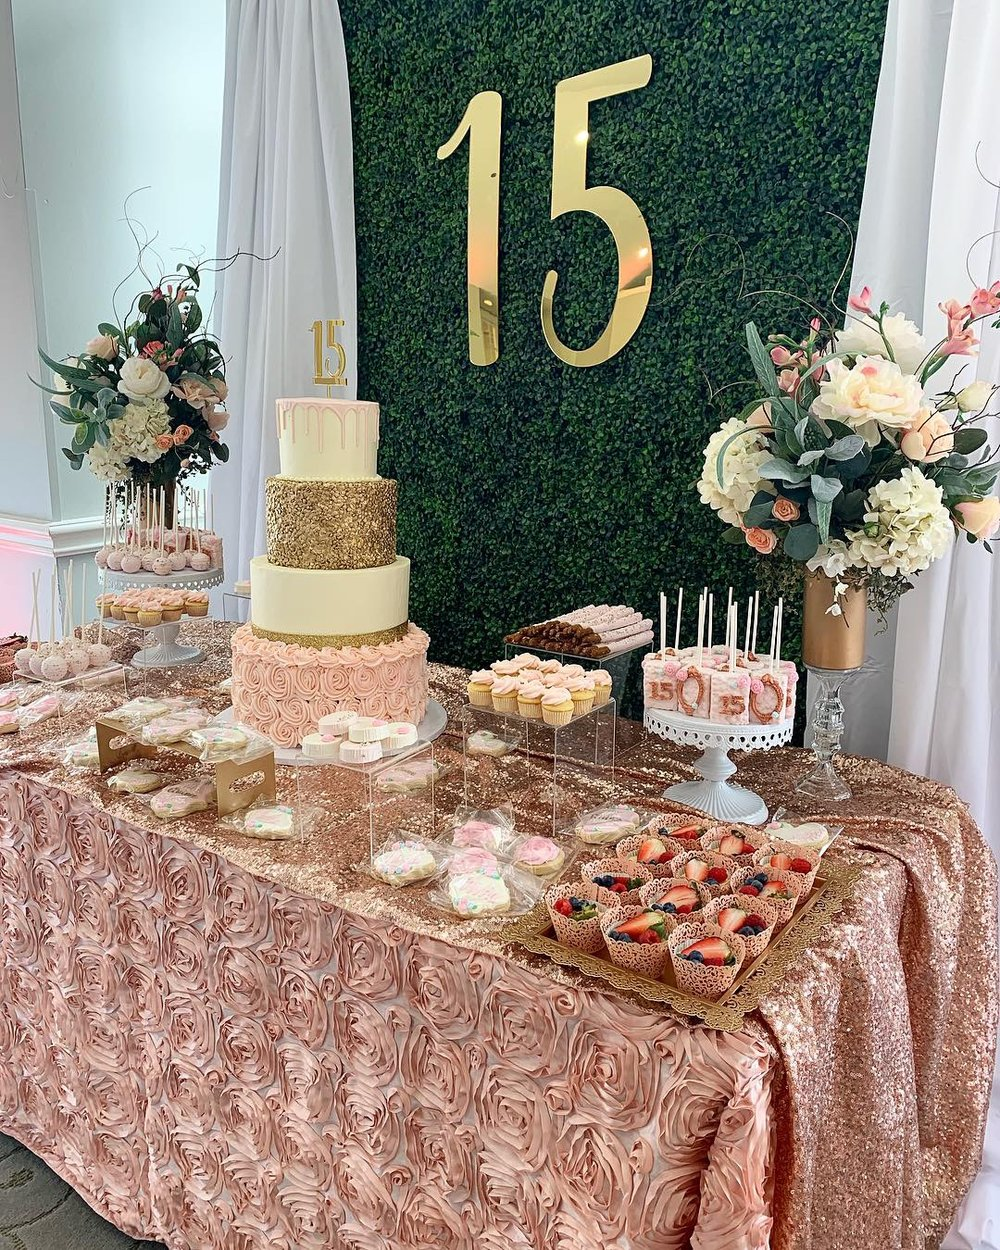 Lesly of Treats and Co Cake with Gold Acrylic Cake Topper and Mirrored Backdrop 15